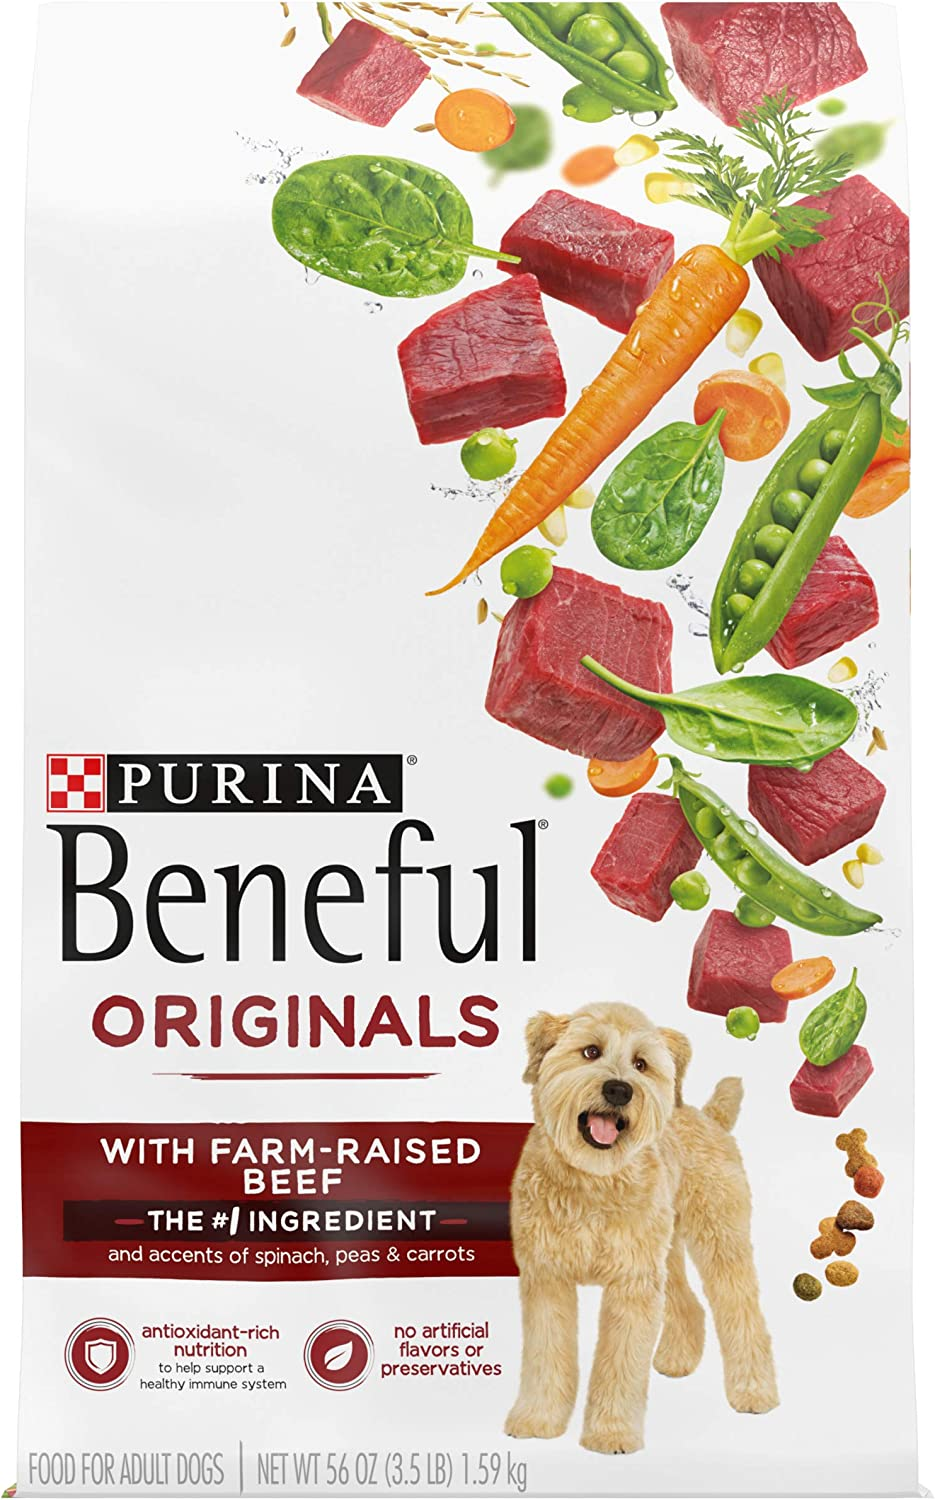 Purina Beneful Real Meat Dry Dog Food, Originals With Farm-Raised Beef - (4) 3.5 lb. Bags